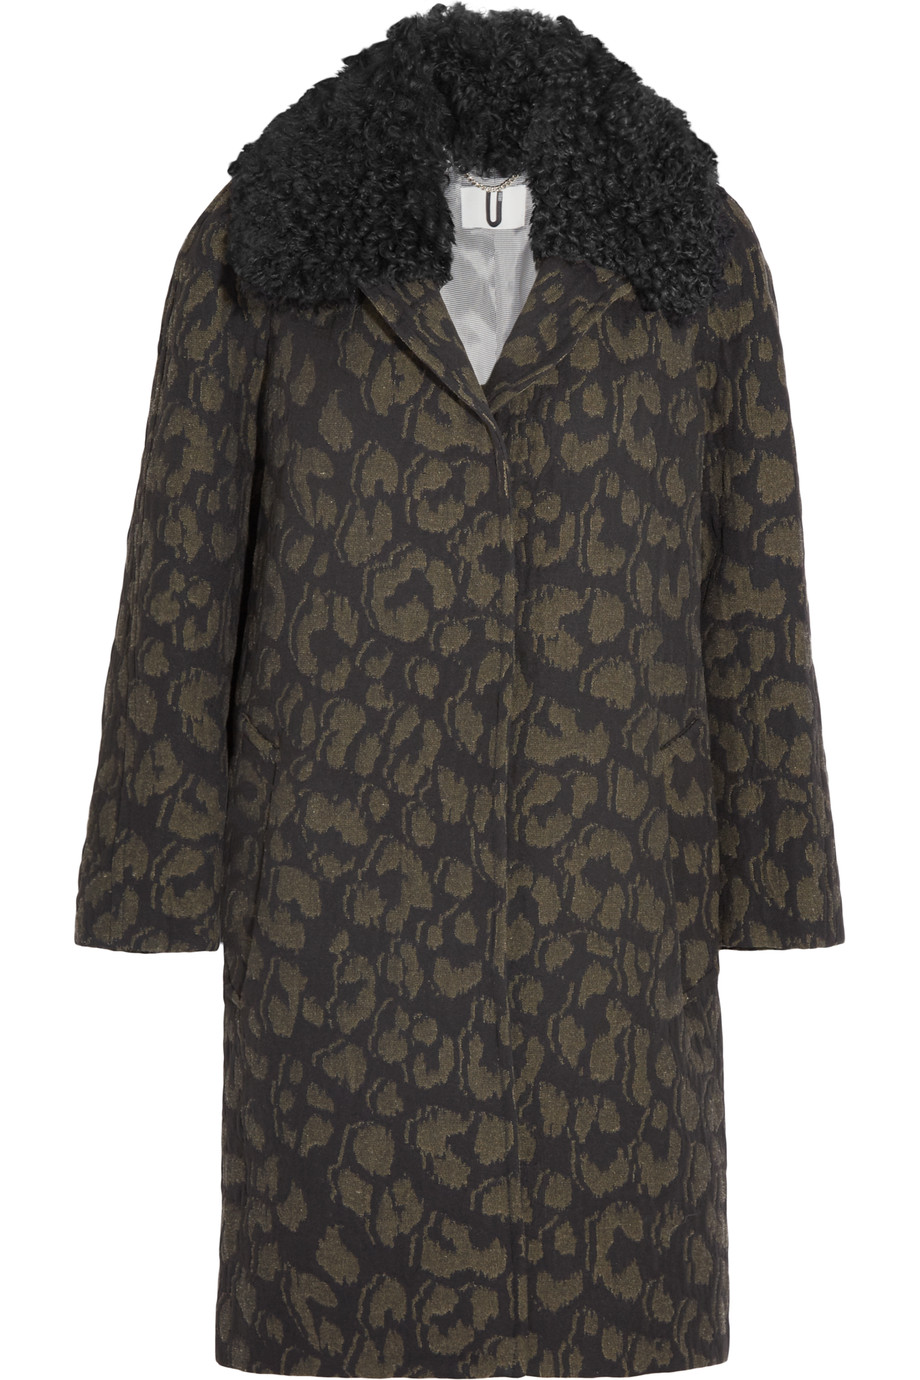 Topshop UNIQUE Sidgwick Coat, $750